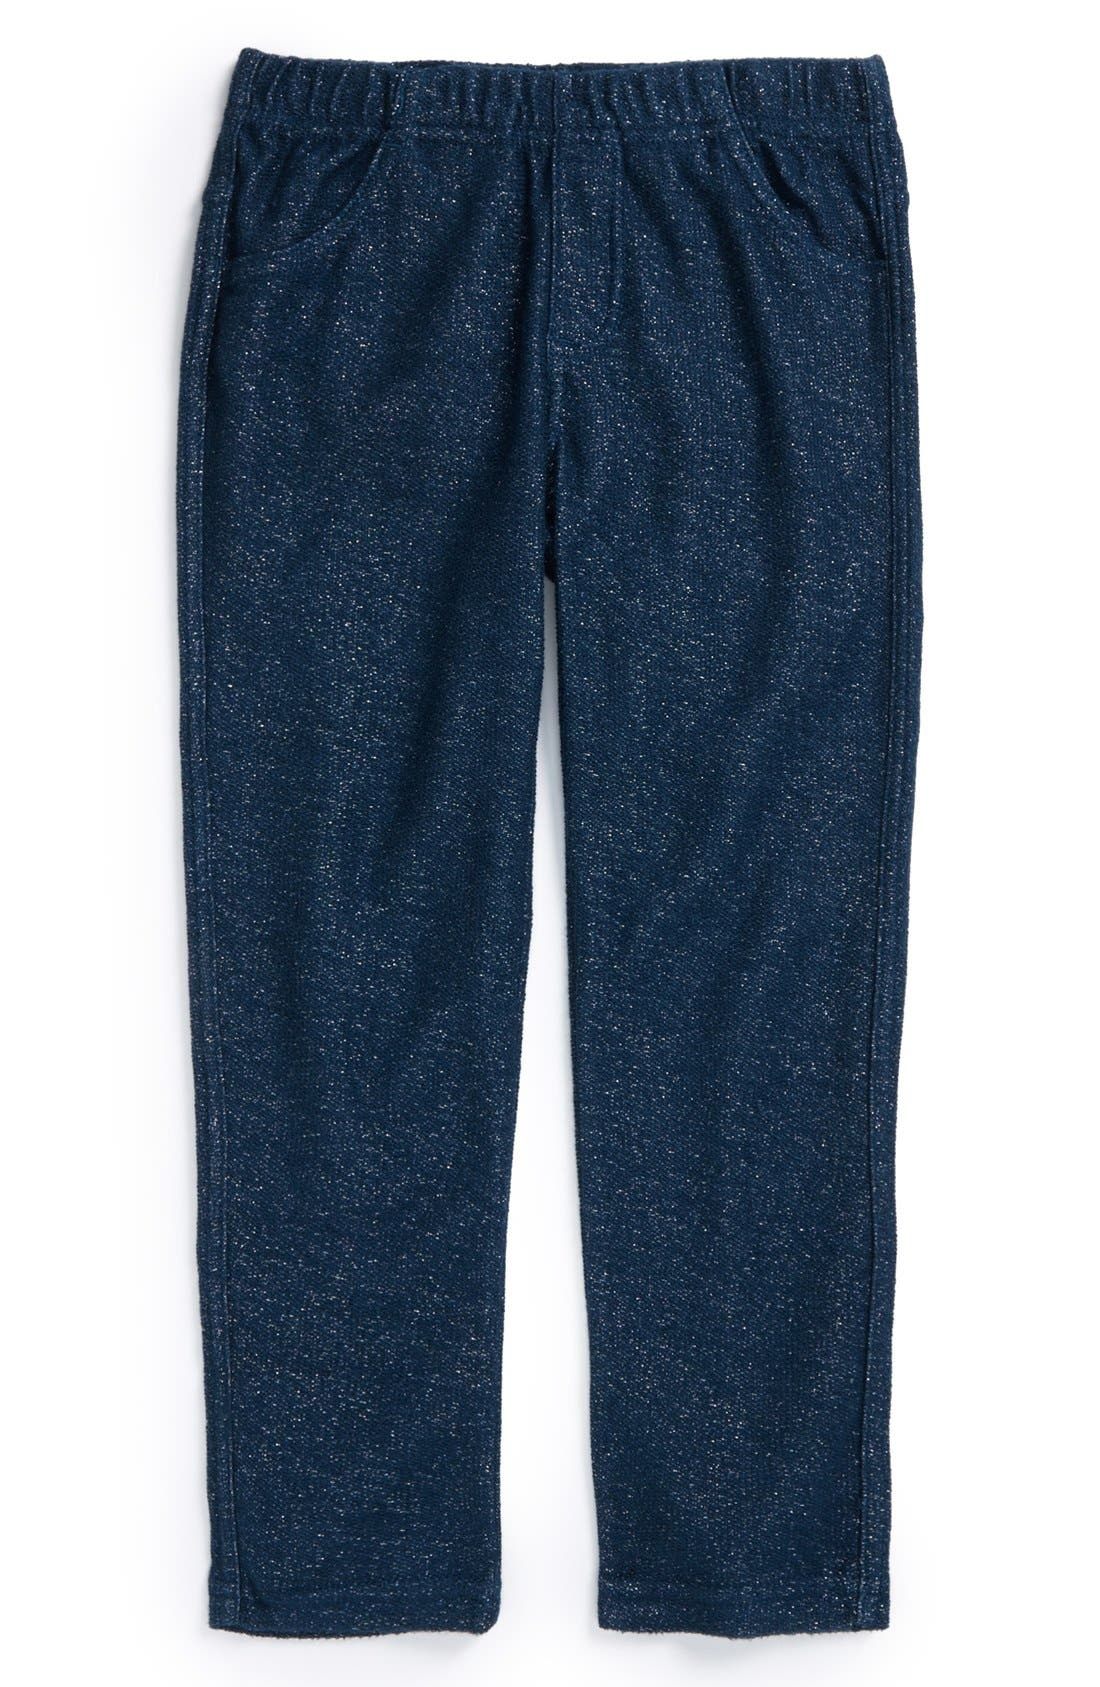 Main Image - Tea Collection 'Sparkle' French Terry Pants (Little Girls & Big Girls)